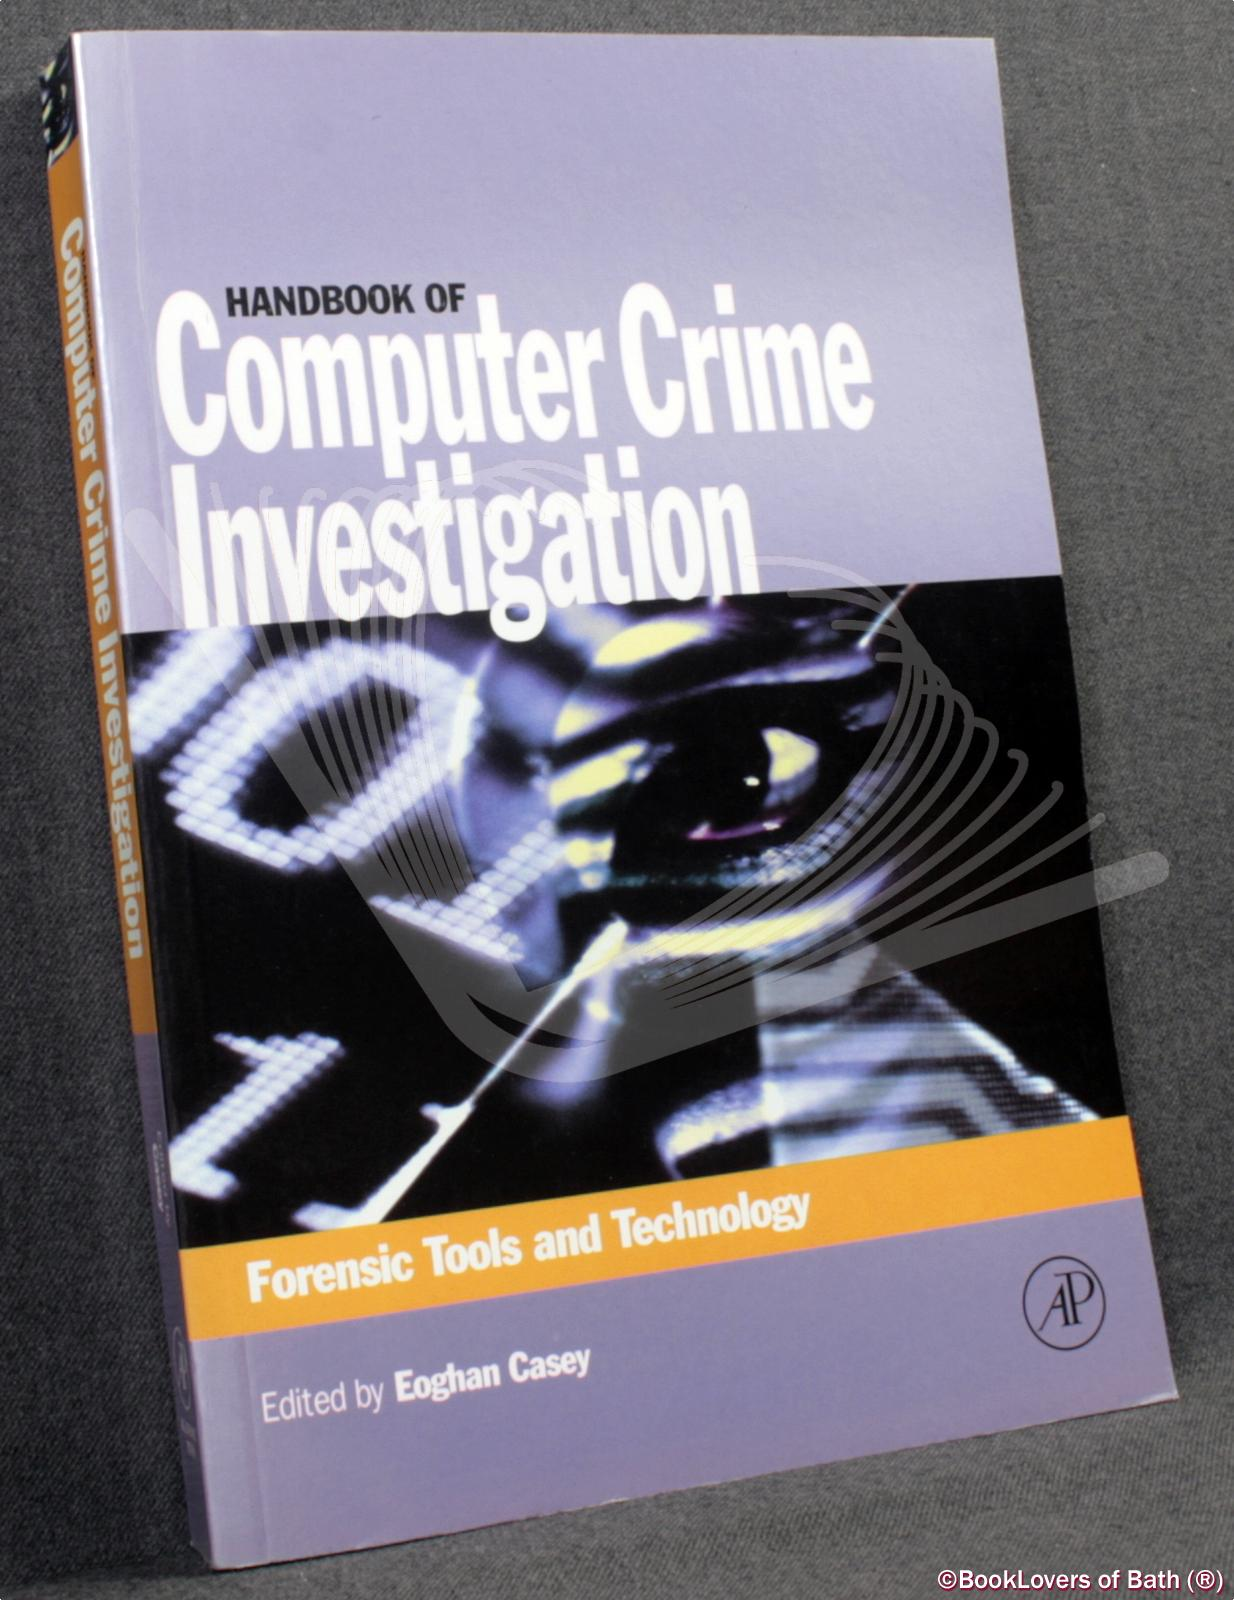 Handbook of Computer Crime Investigation: Forensic Tools and Technology - Edited by Eoghan Casey